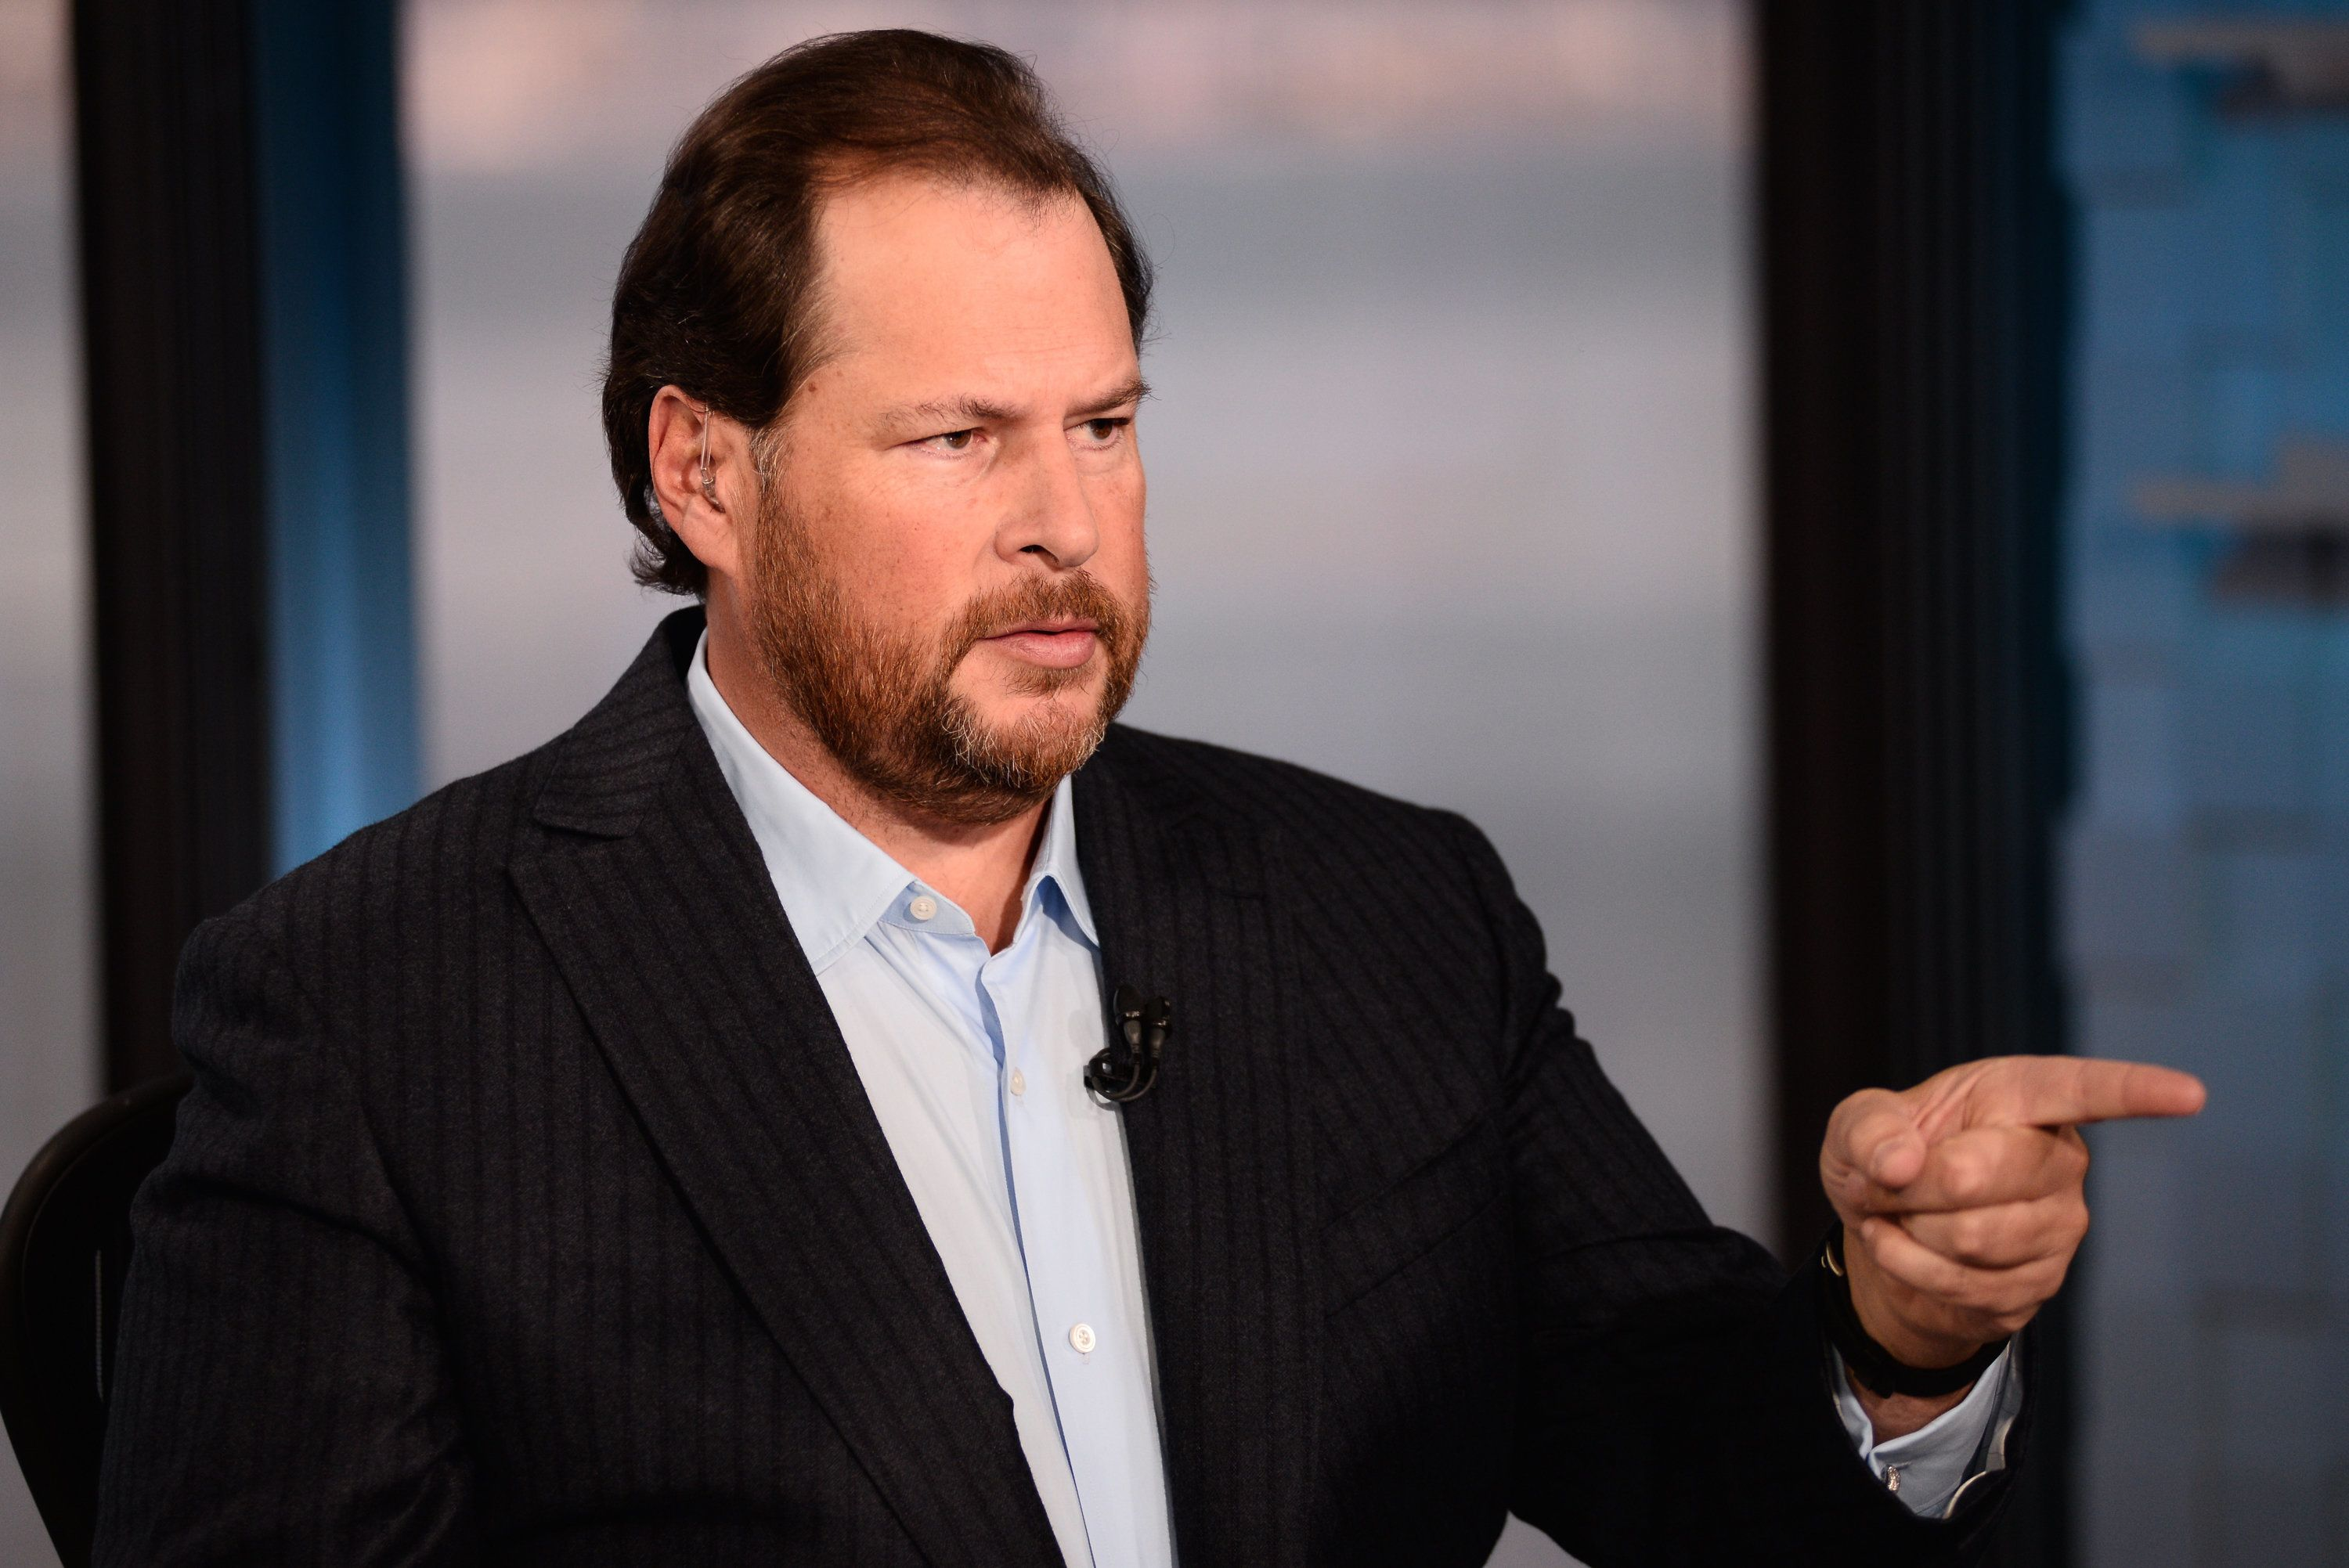 CNBC NEWS -- Pictured: Marc Benioff, chairman and CEO of Salesforce.com, in an interview in  San Francisco on November 19, 2015.  -- (Photo by: Mark Neuling/CNBC/NBCU Photo Bank via Getty Images)